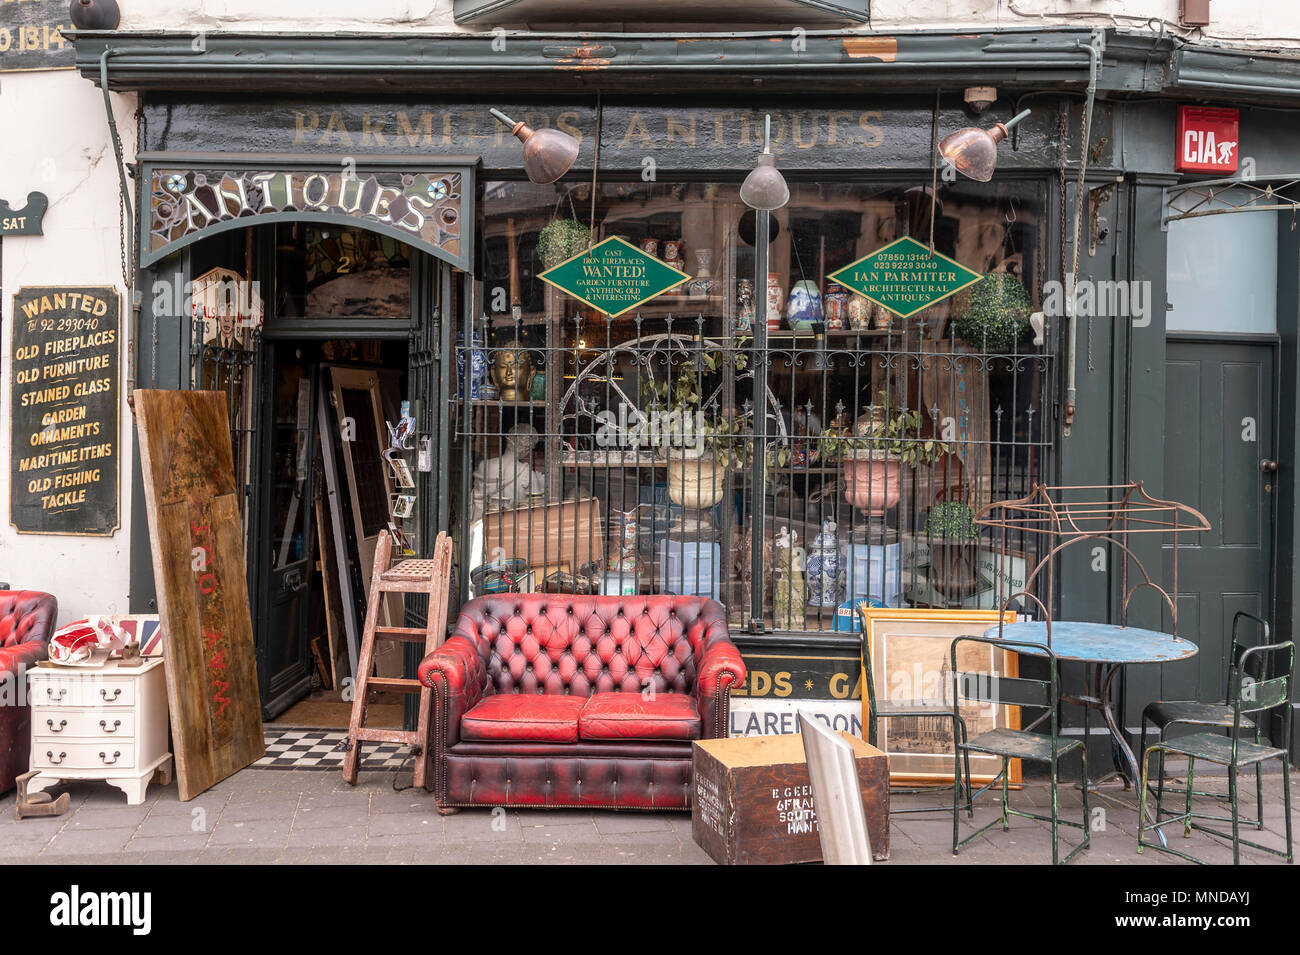 exterior of an antique shop in the Albert Road, Southsea, hampshire, UK - Stock Image